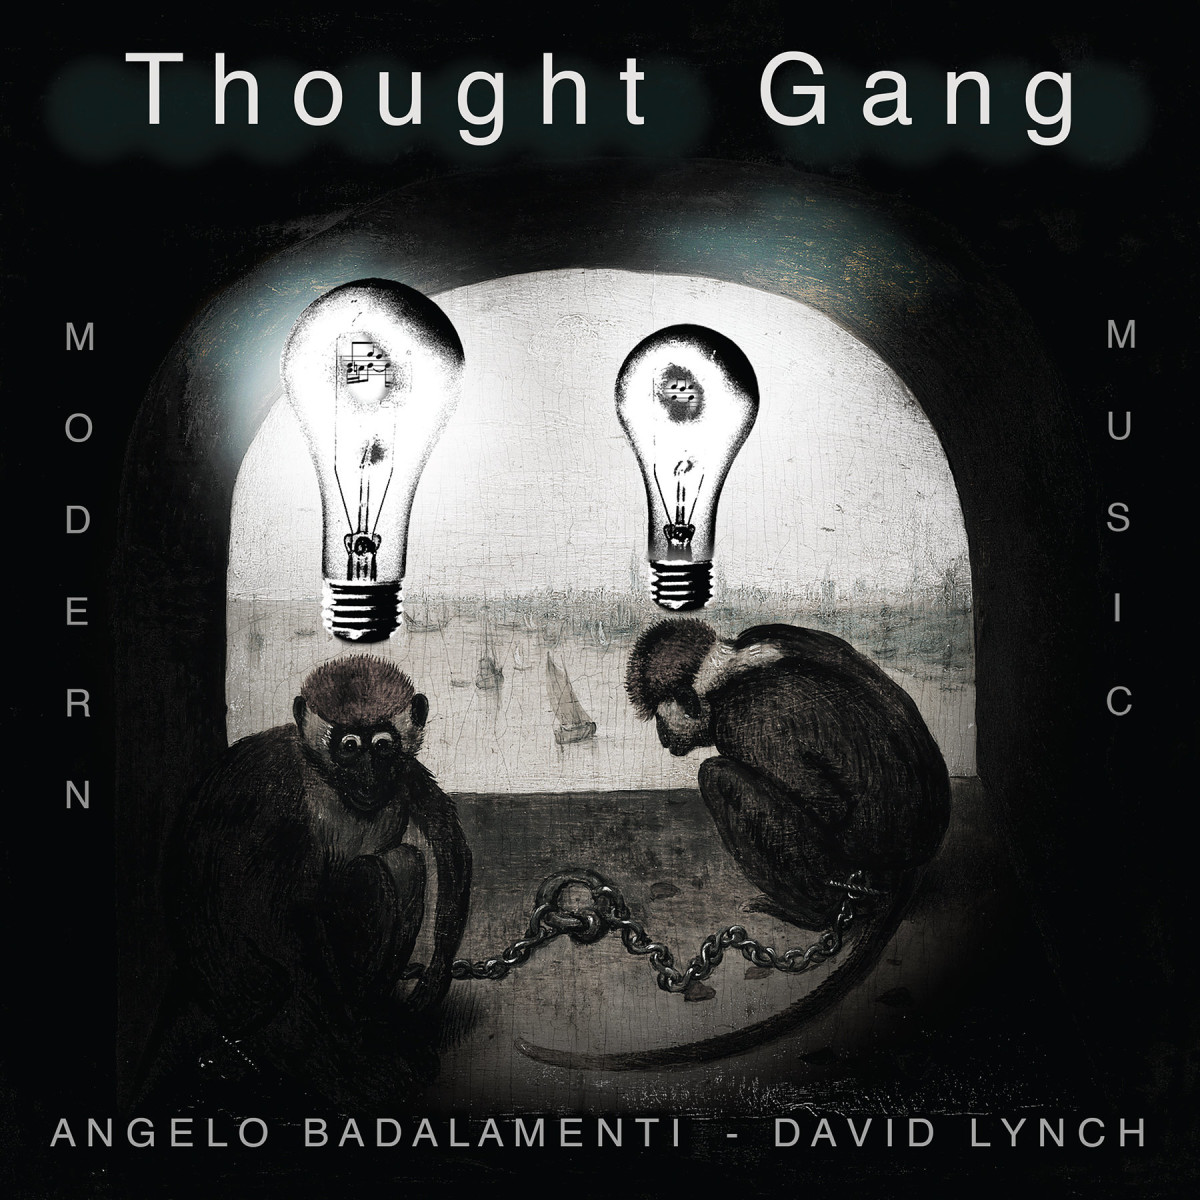 Thought Gang album